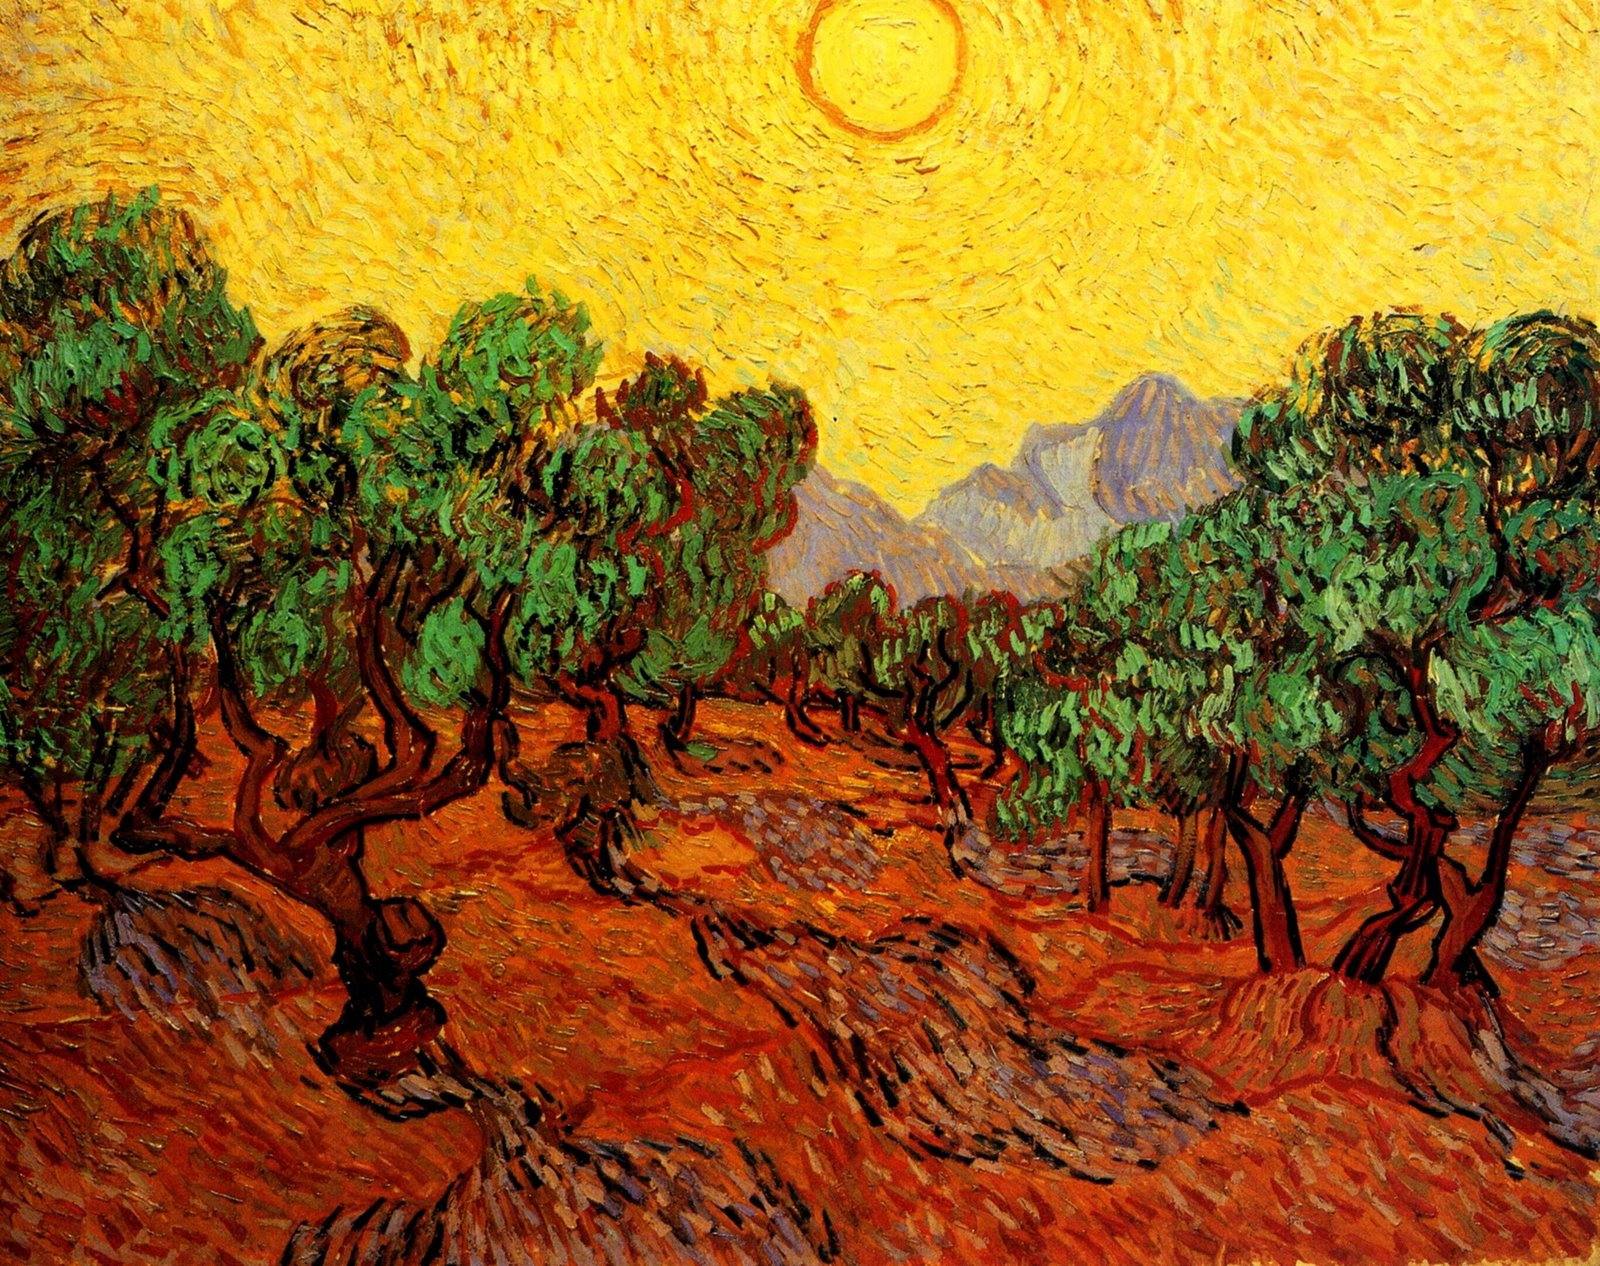 Olive trees with yellow sky and sun, van gogh